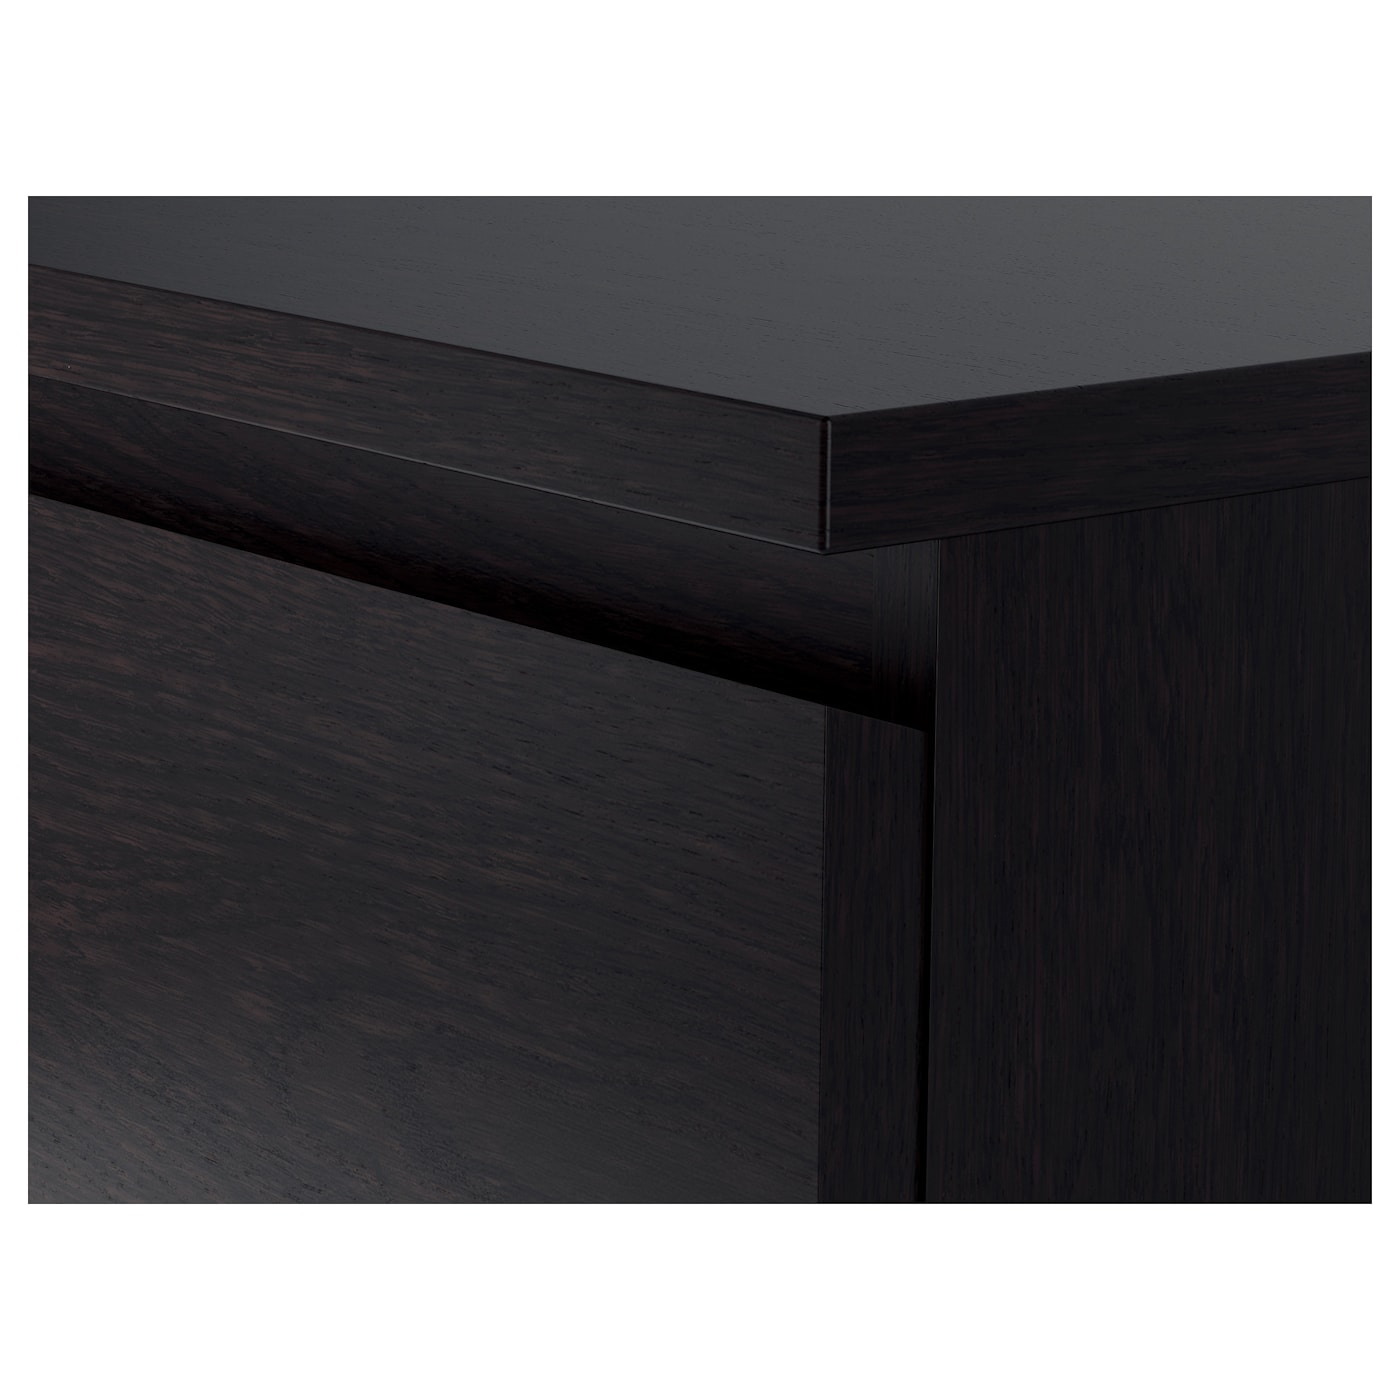 black furniture ikea. IKEA MALM Chest Of 3 Drawers Real Wood Veneer Will Make This Age Black Furniture Ikea R